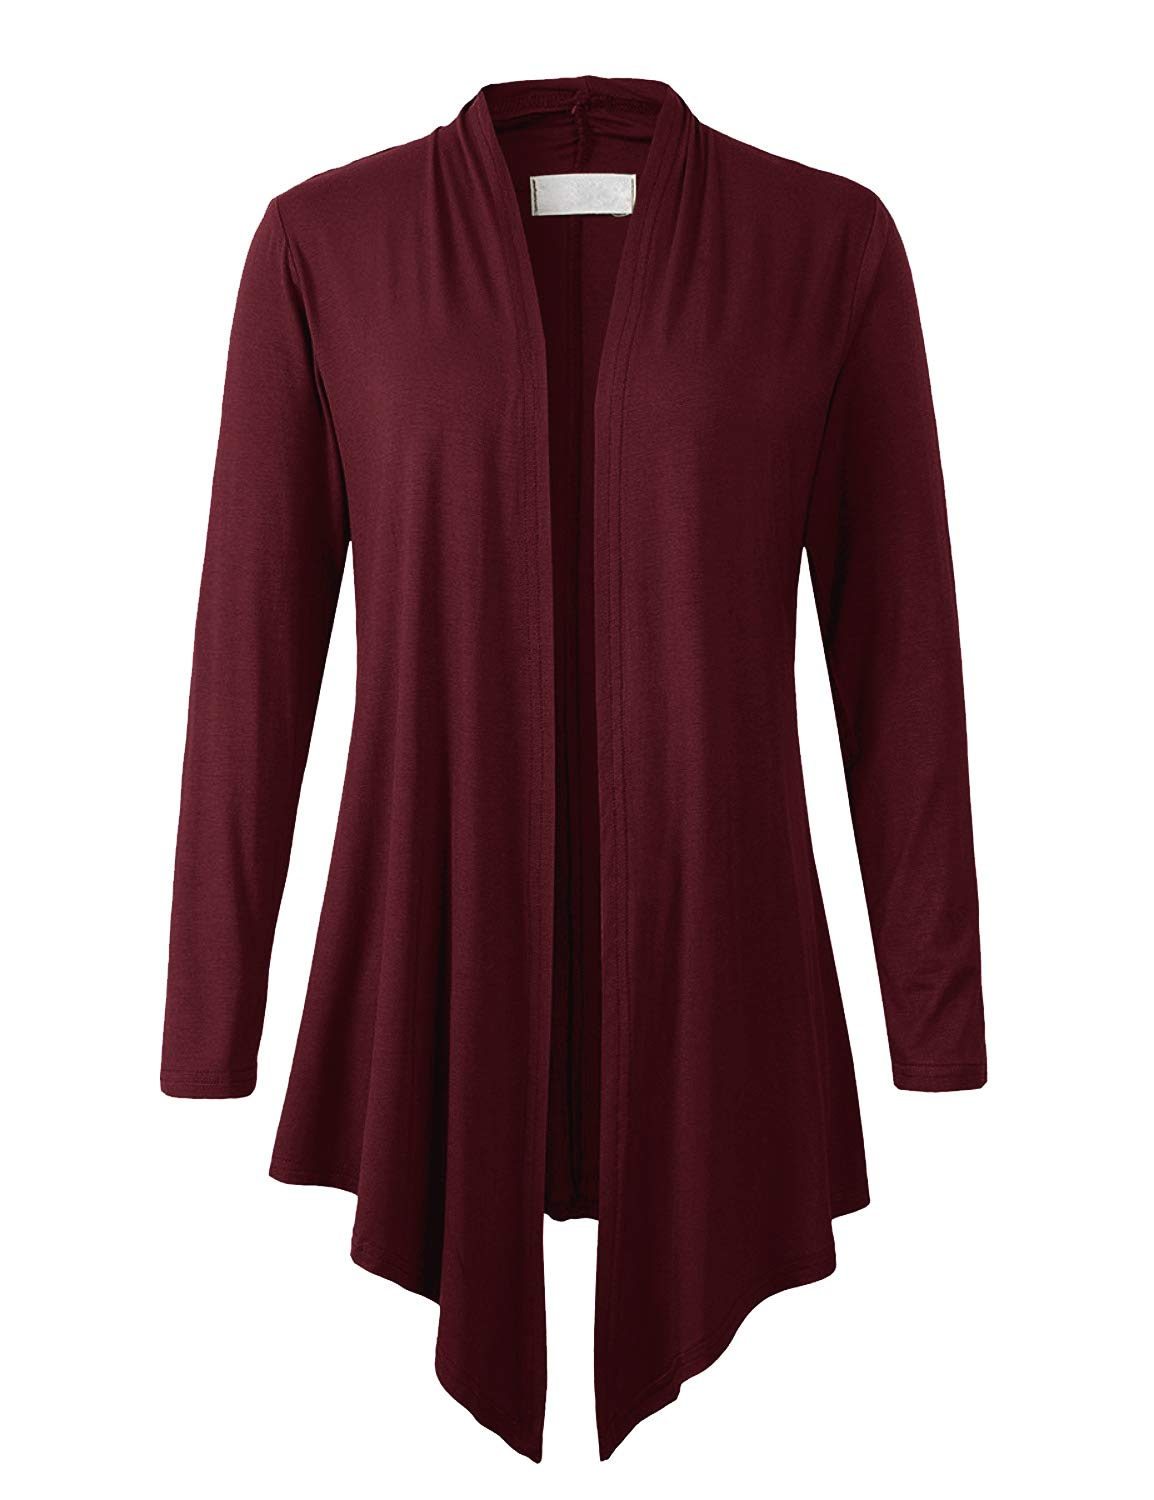 Eanklosco Women's Long Sleeve Drape Open-Front Cardigan Light Weight Irregular Hem Casual Tops (XL, Wine Red)